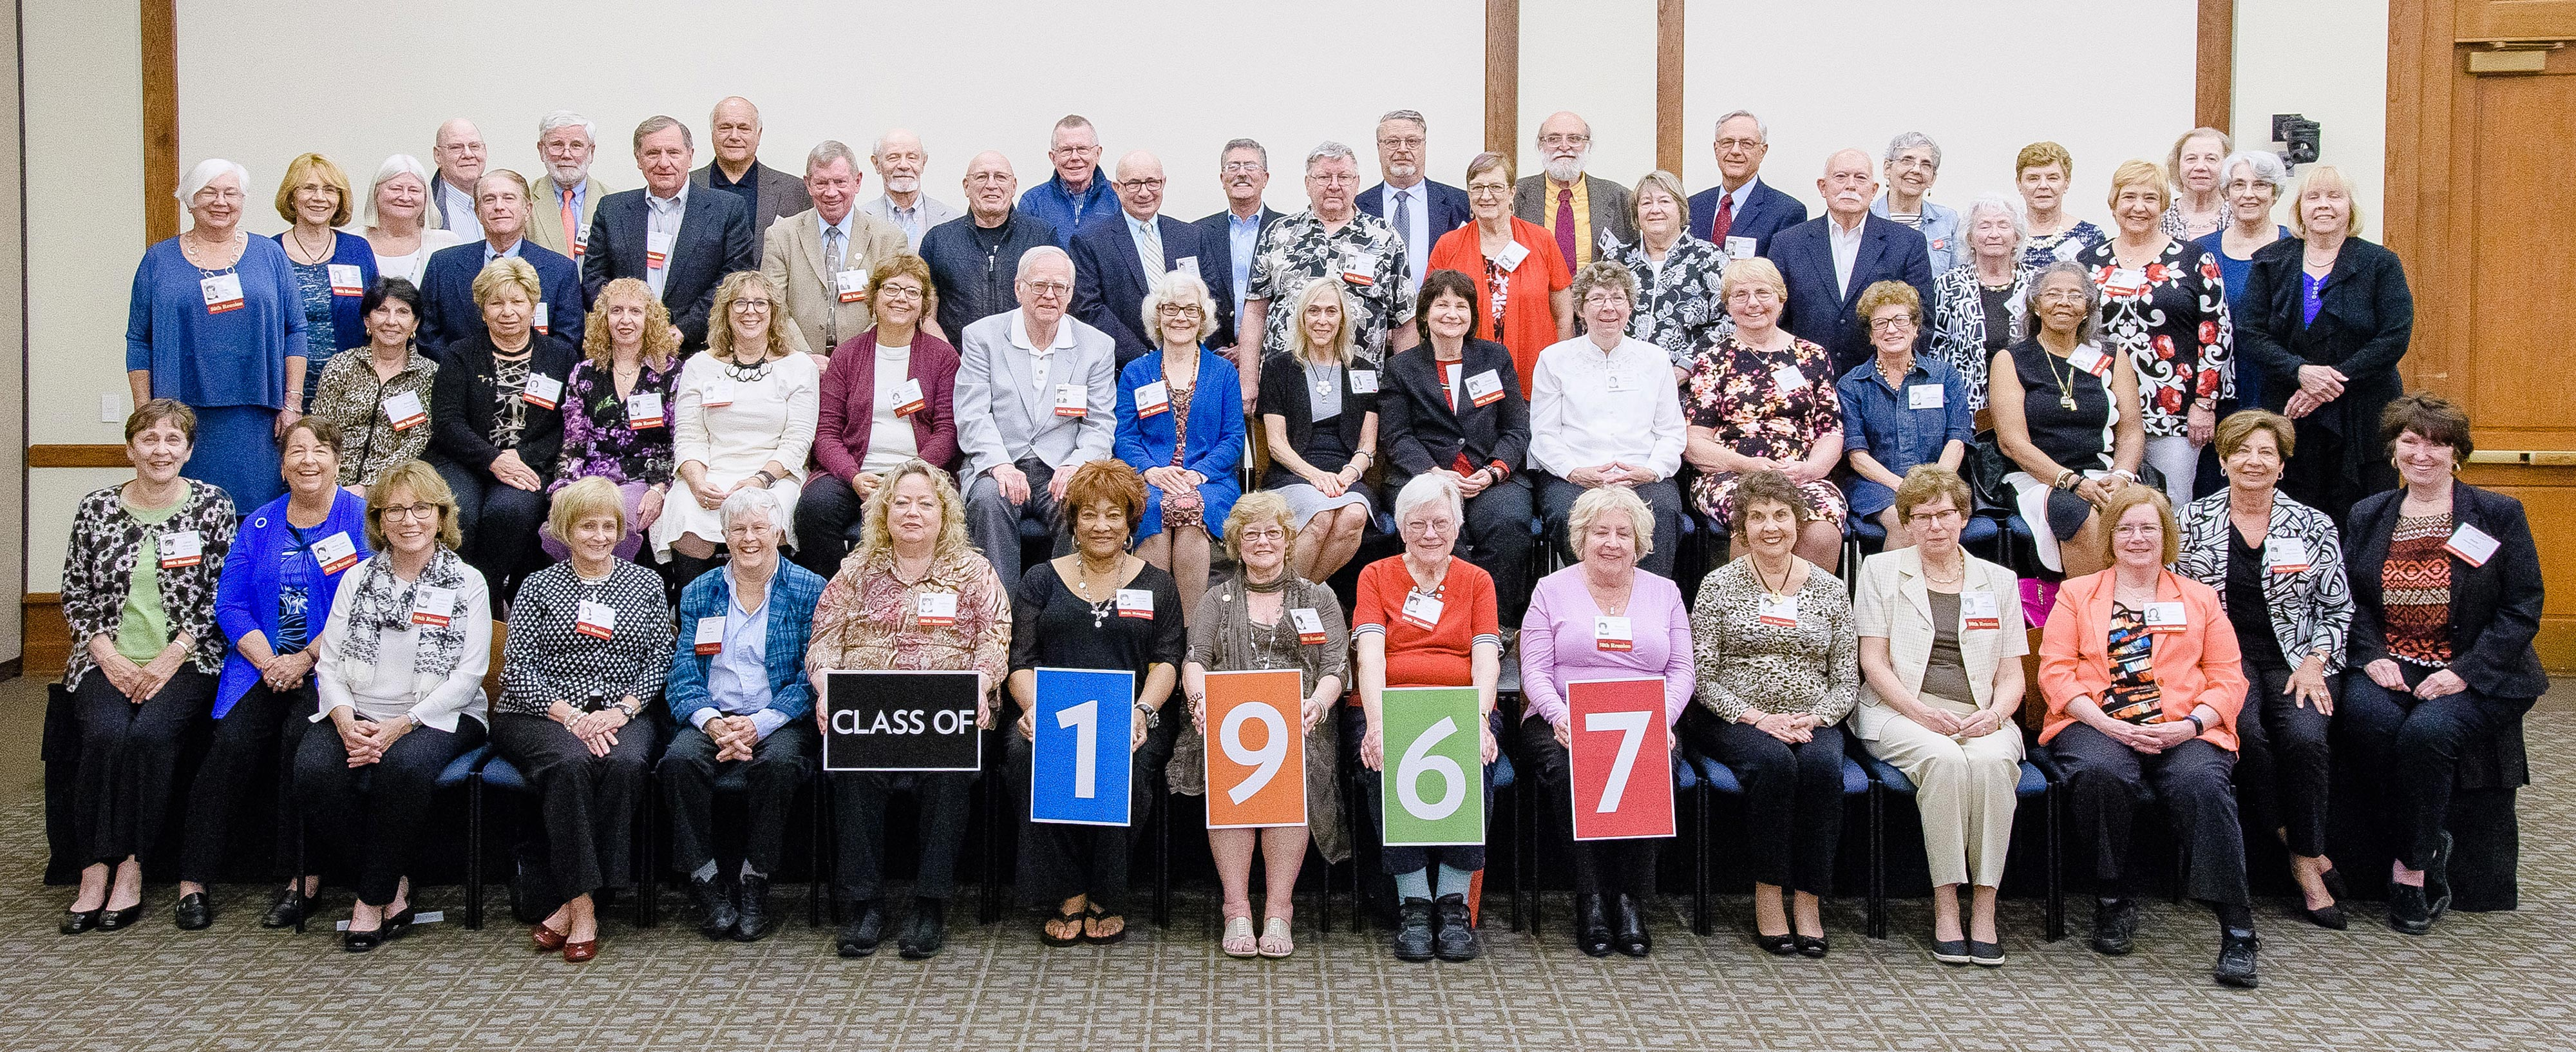 Group picture of the class of 1967 at their 50th reunion. Four members at the bottom row hold up posters that spell out 1967.